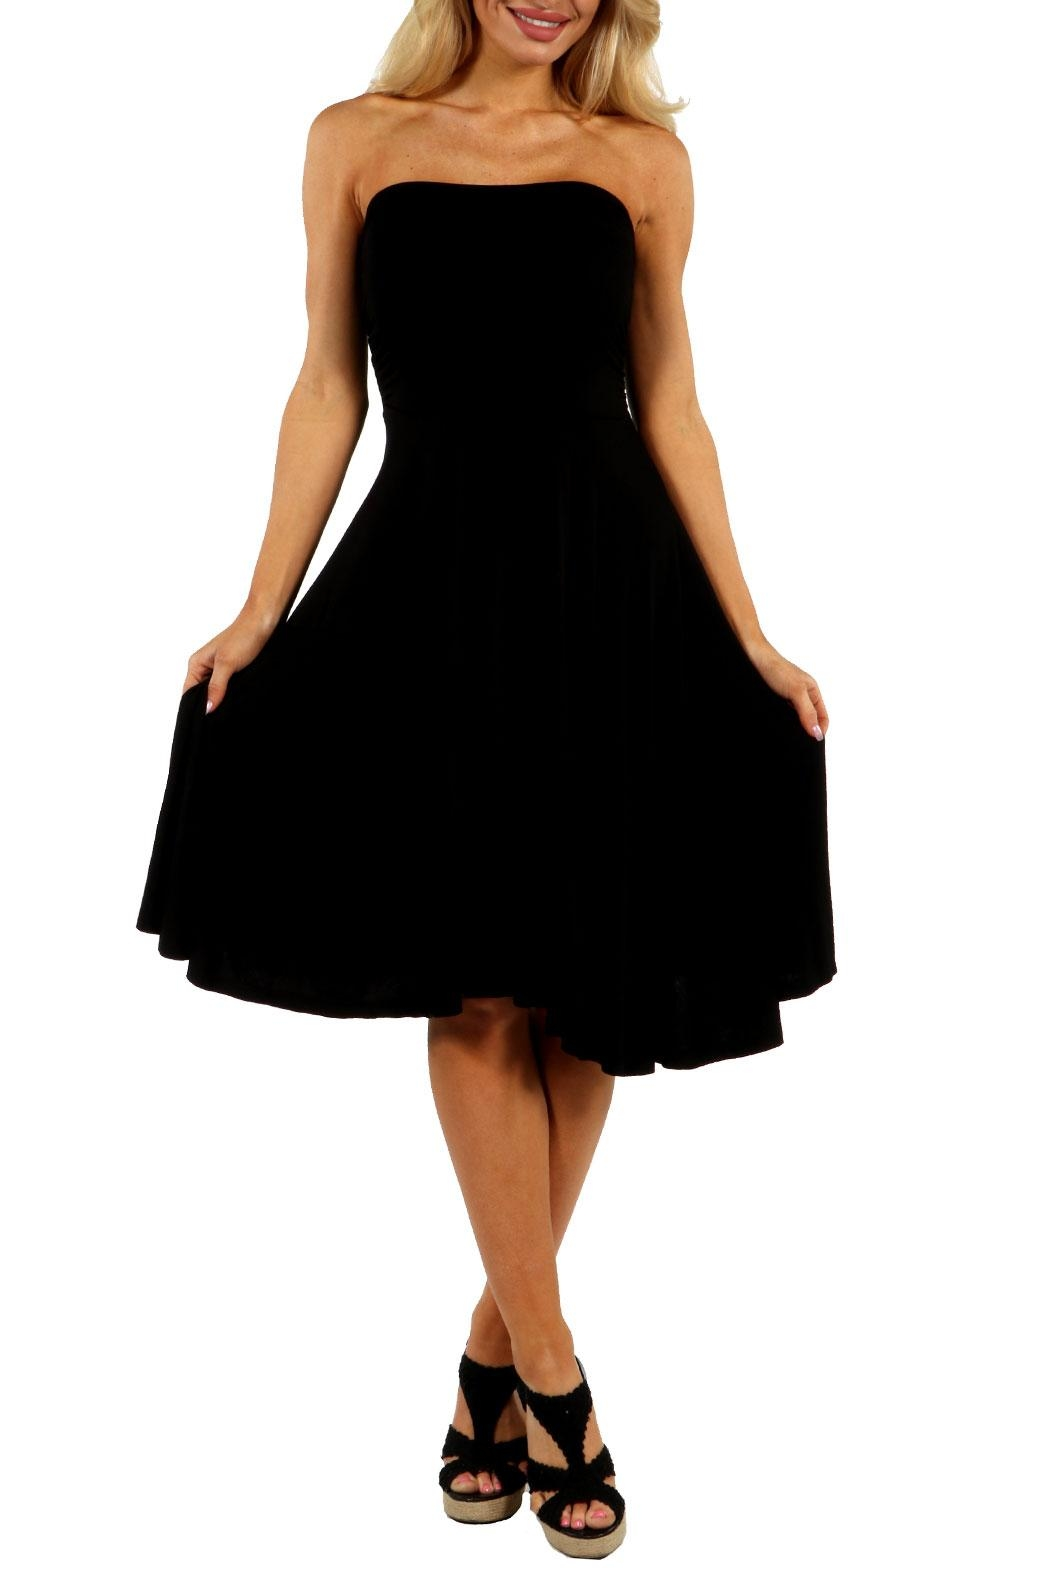 24/7 Comfort Apparel Irresistible Strapless Dress - Front Cropped Image